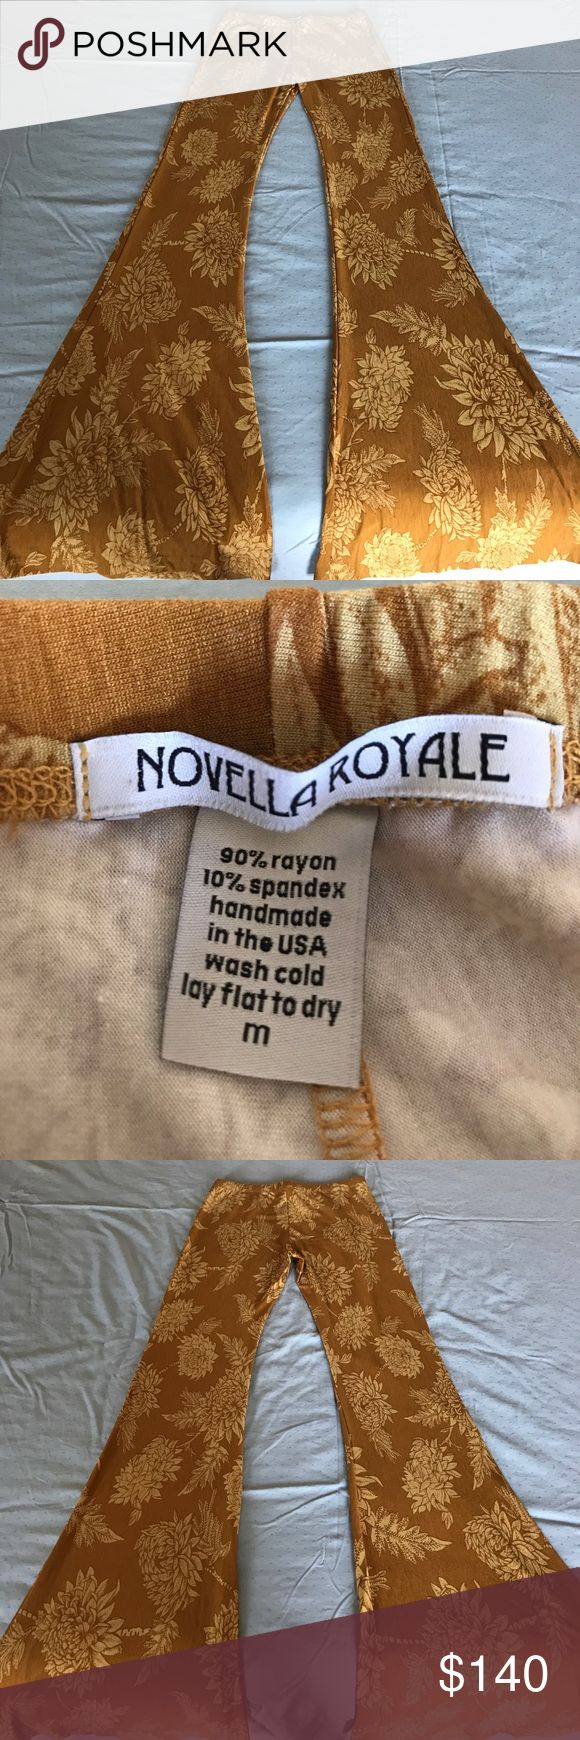 NWOT Novella Royals Janis Flares M Mint condition new with out tags Novella Royale Janis flares in the gold dahlia color. Novella Royale Pants Boot Cut & Flare